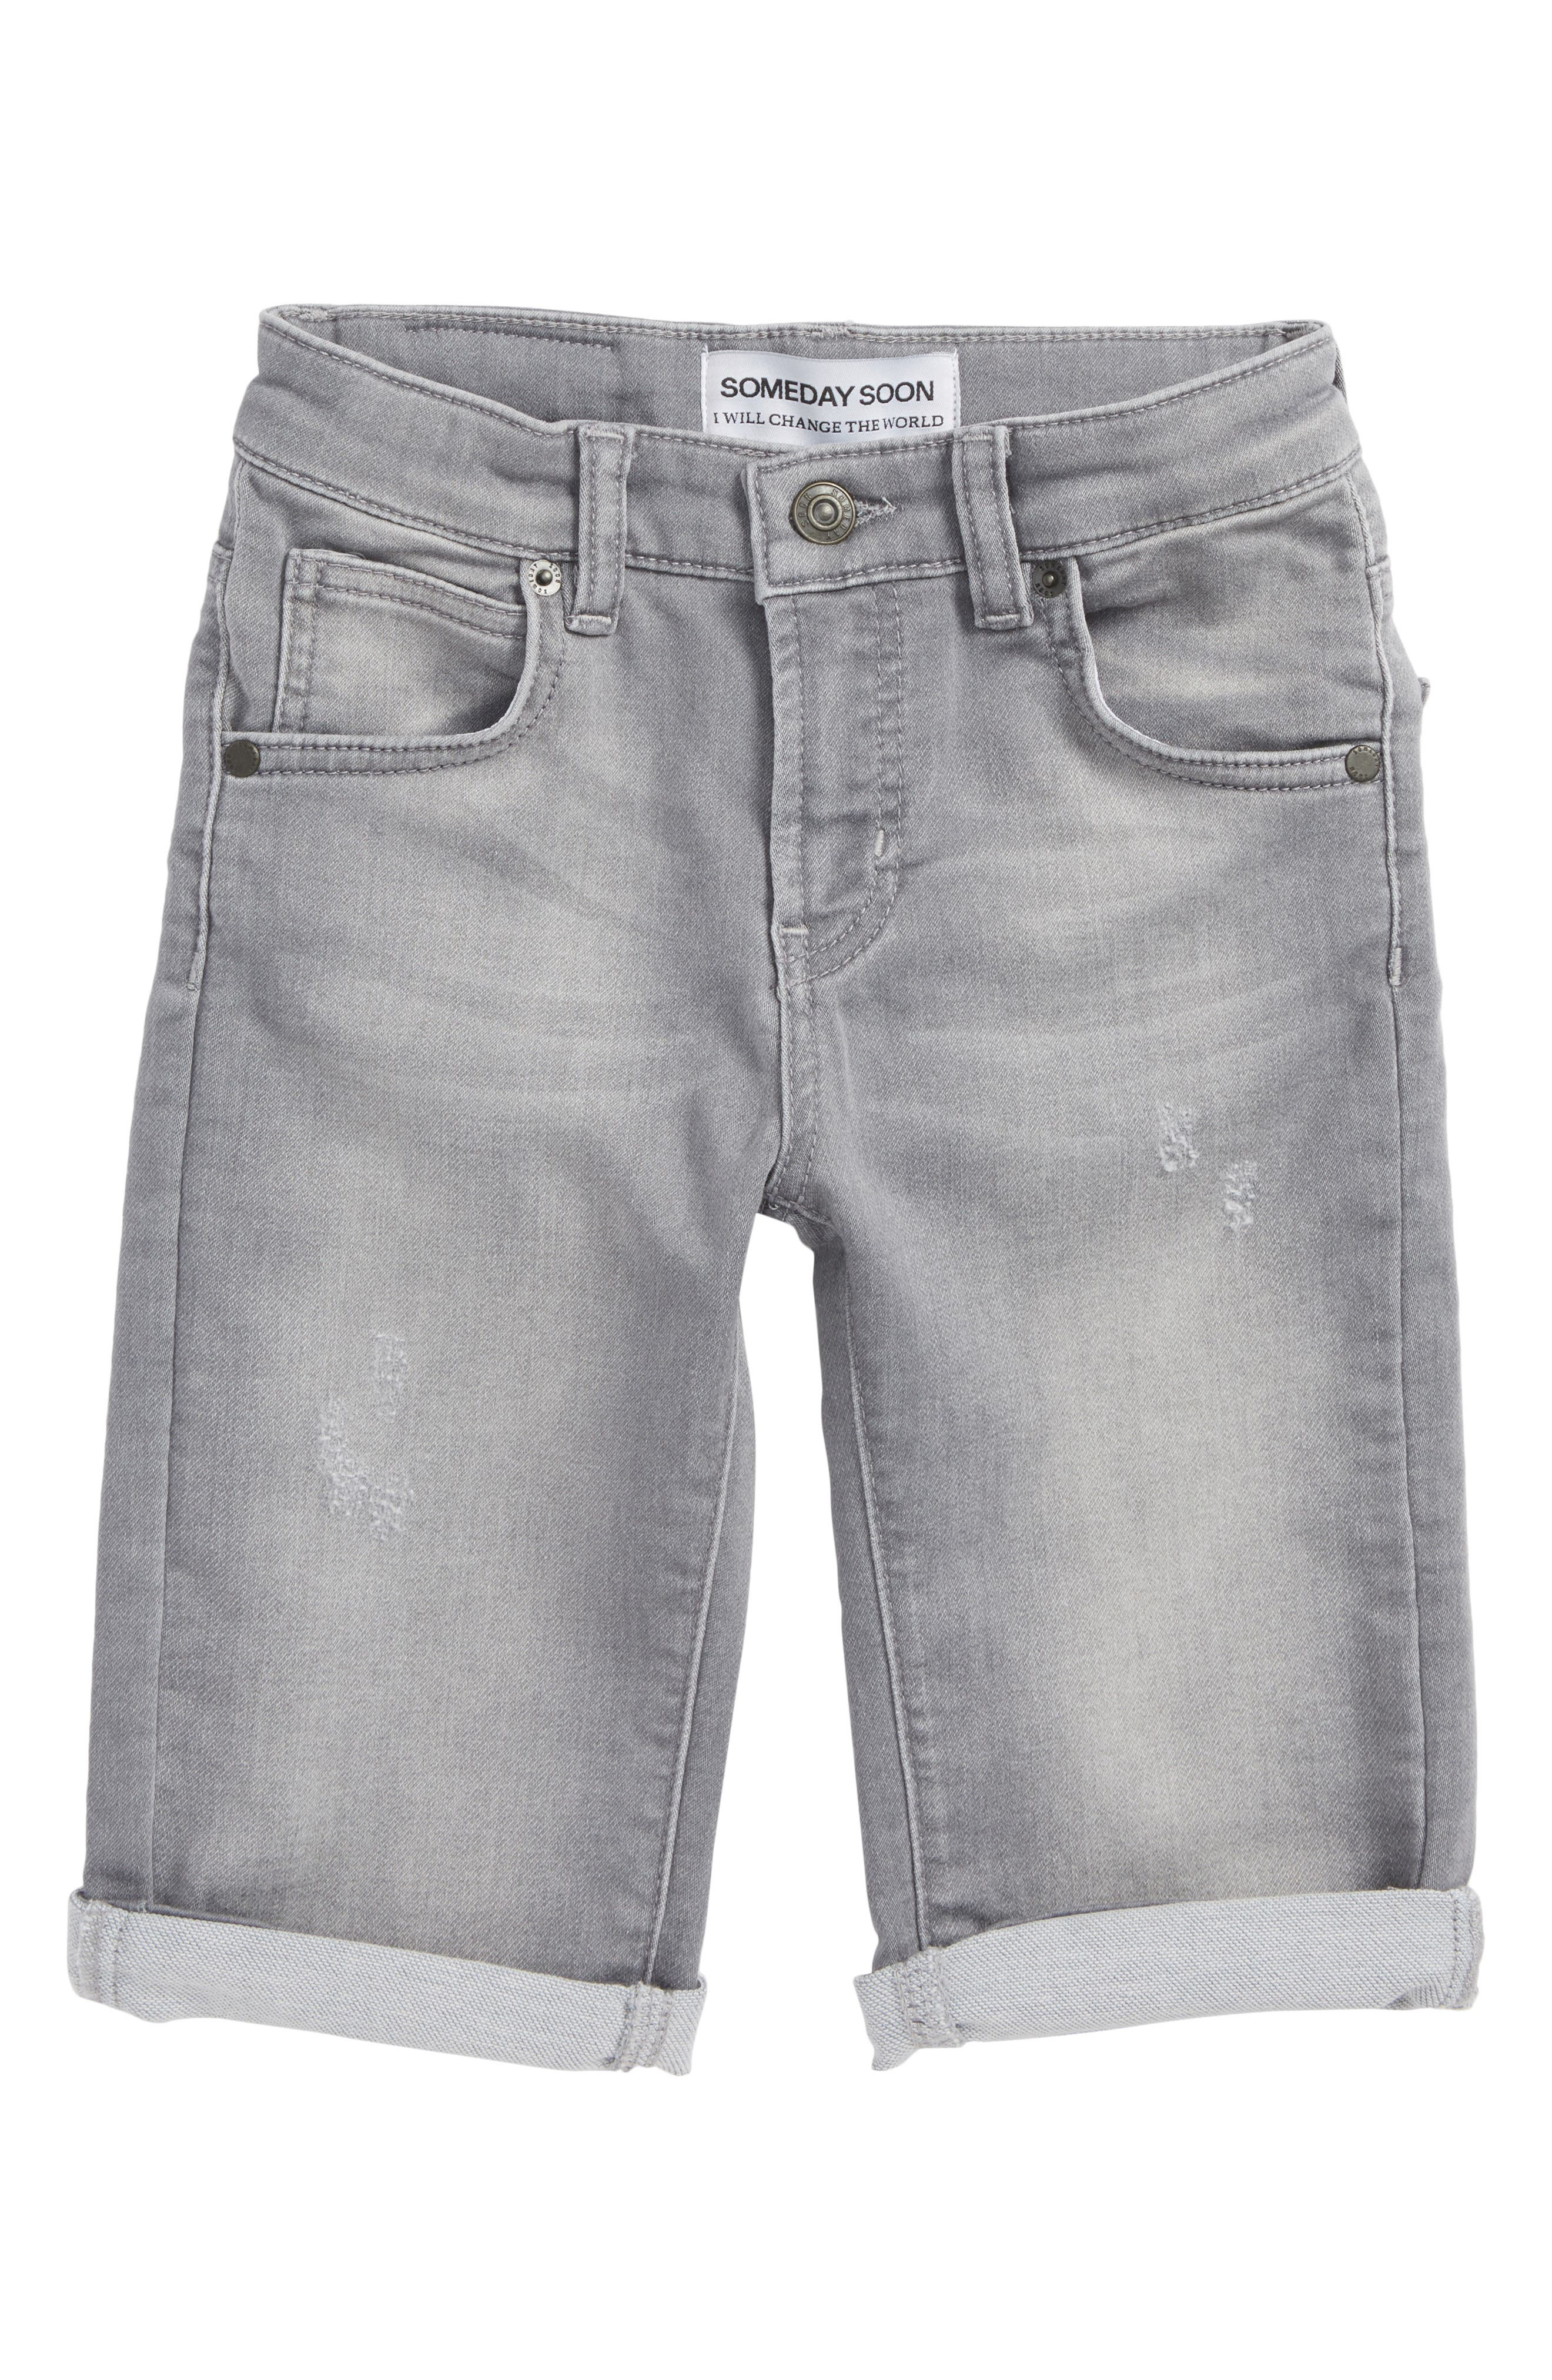 Carl Denim Shorts,                         Main,                         color, 020